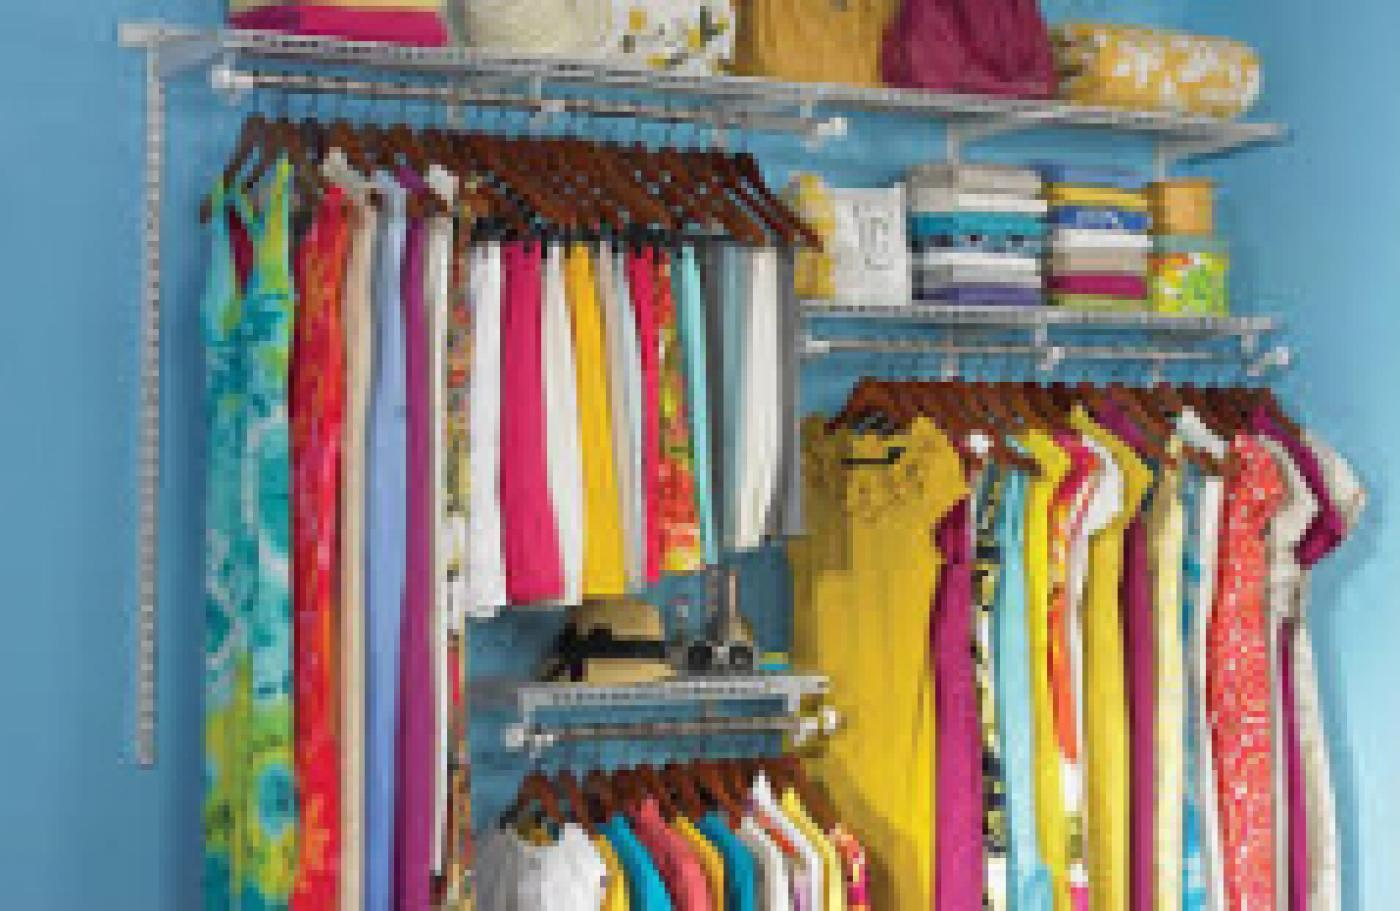 <h2>Fit to a Tee Clothing Consignment Sale</h2> <h3><br />A Fundraiser for the Historical Society</